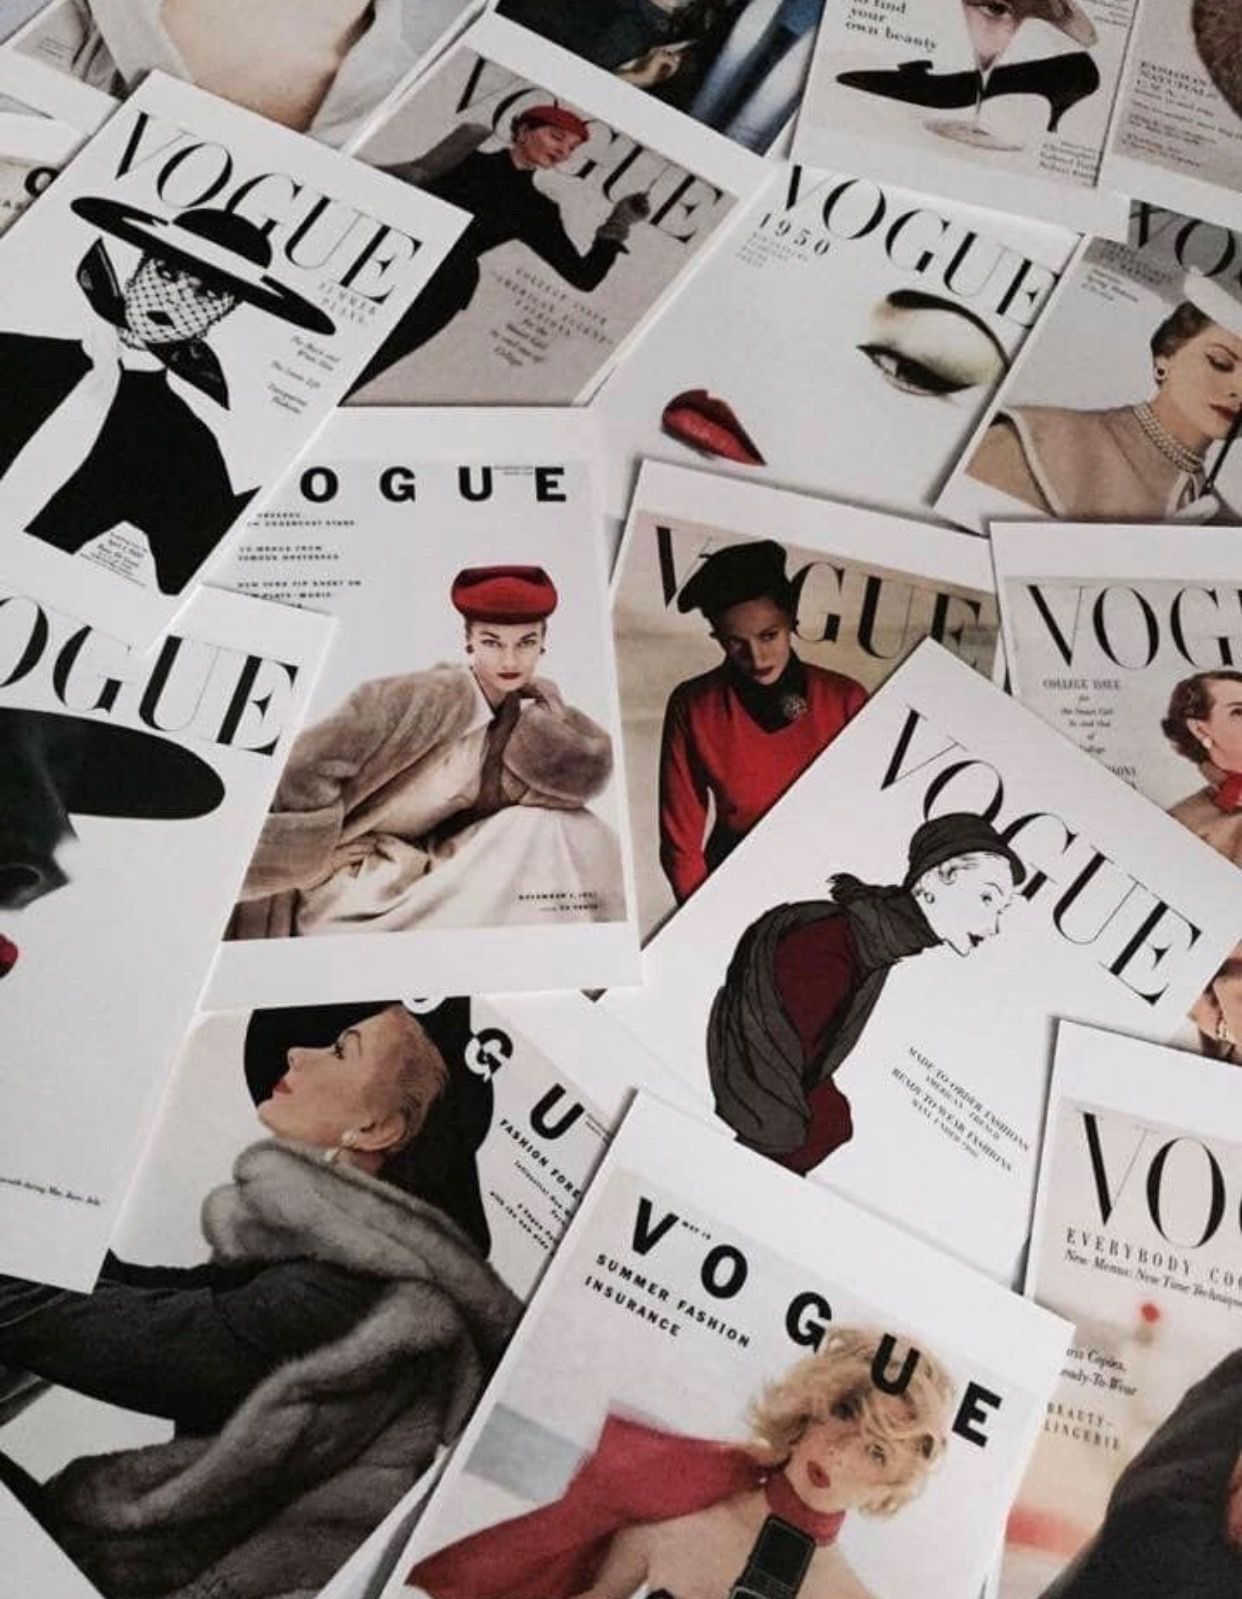 Pin by katy land on that's so vogue Vogue photography